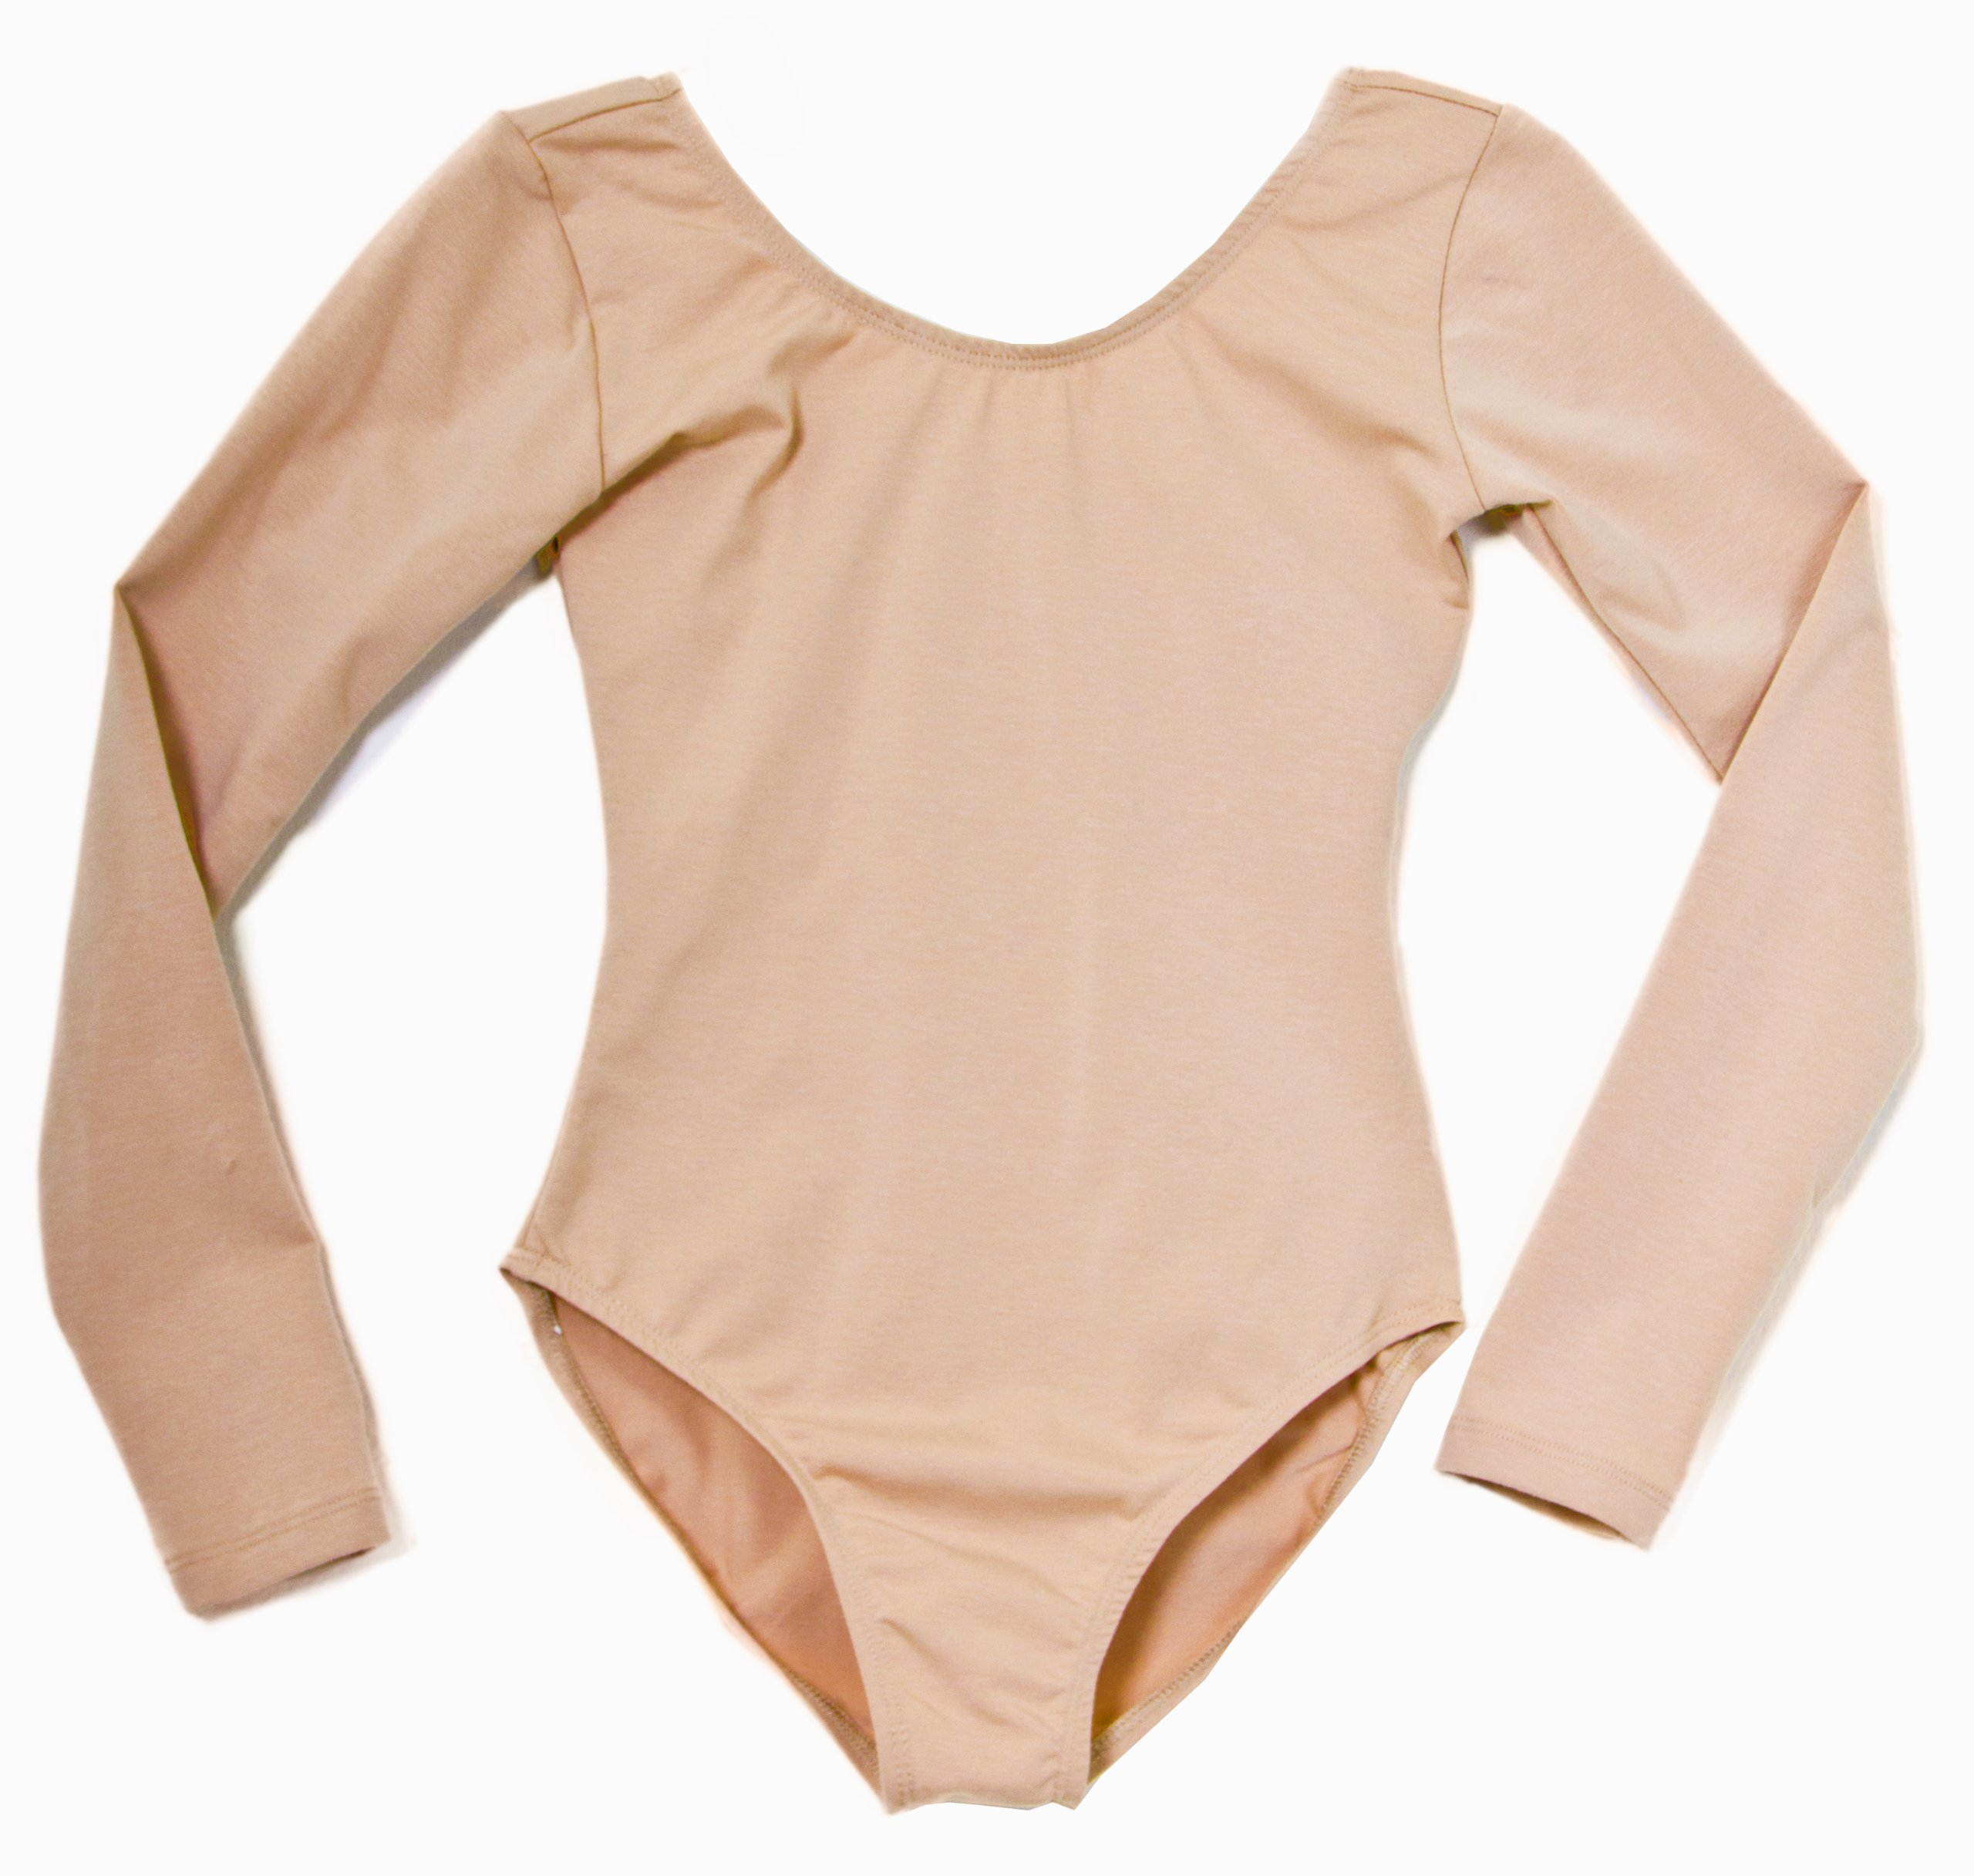 American Theater Dancewear Adult's Cotton Long Sleeve Leotard (Nude Medium) by American Theater Dancewear